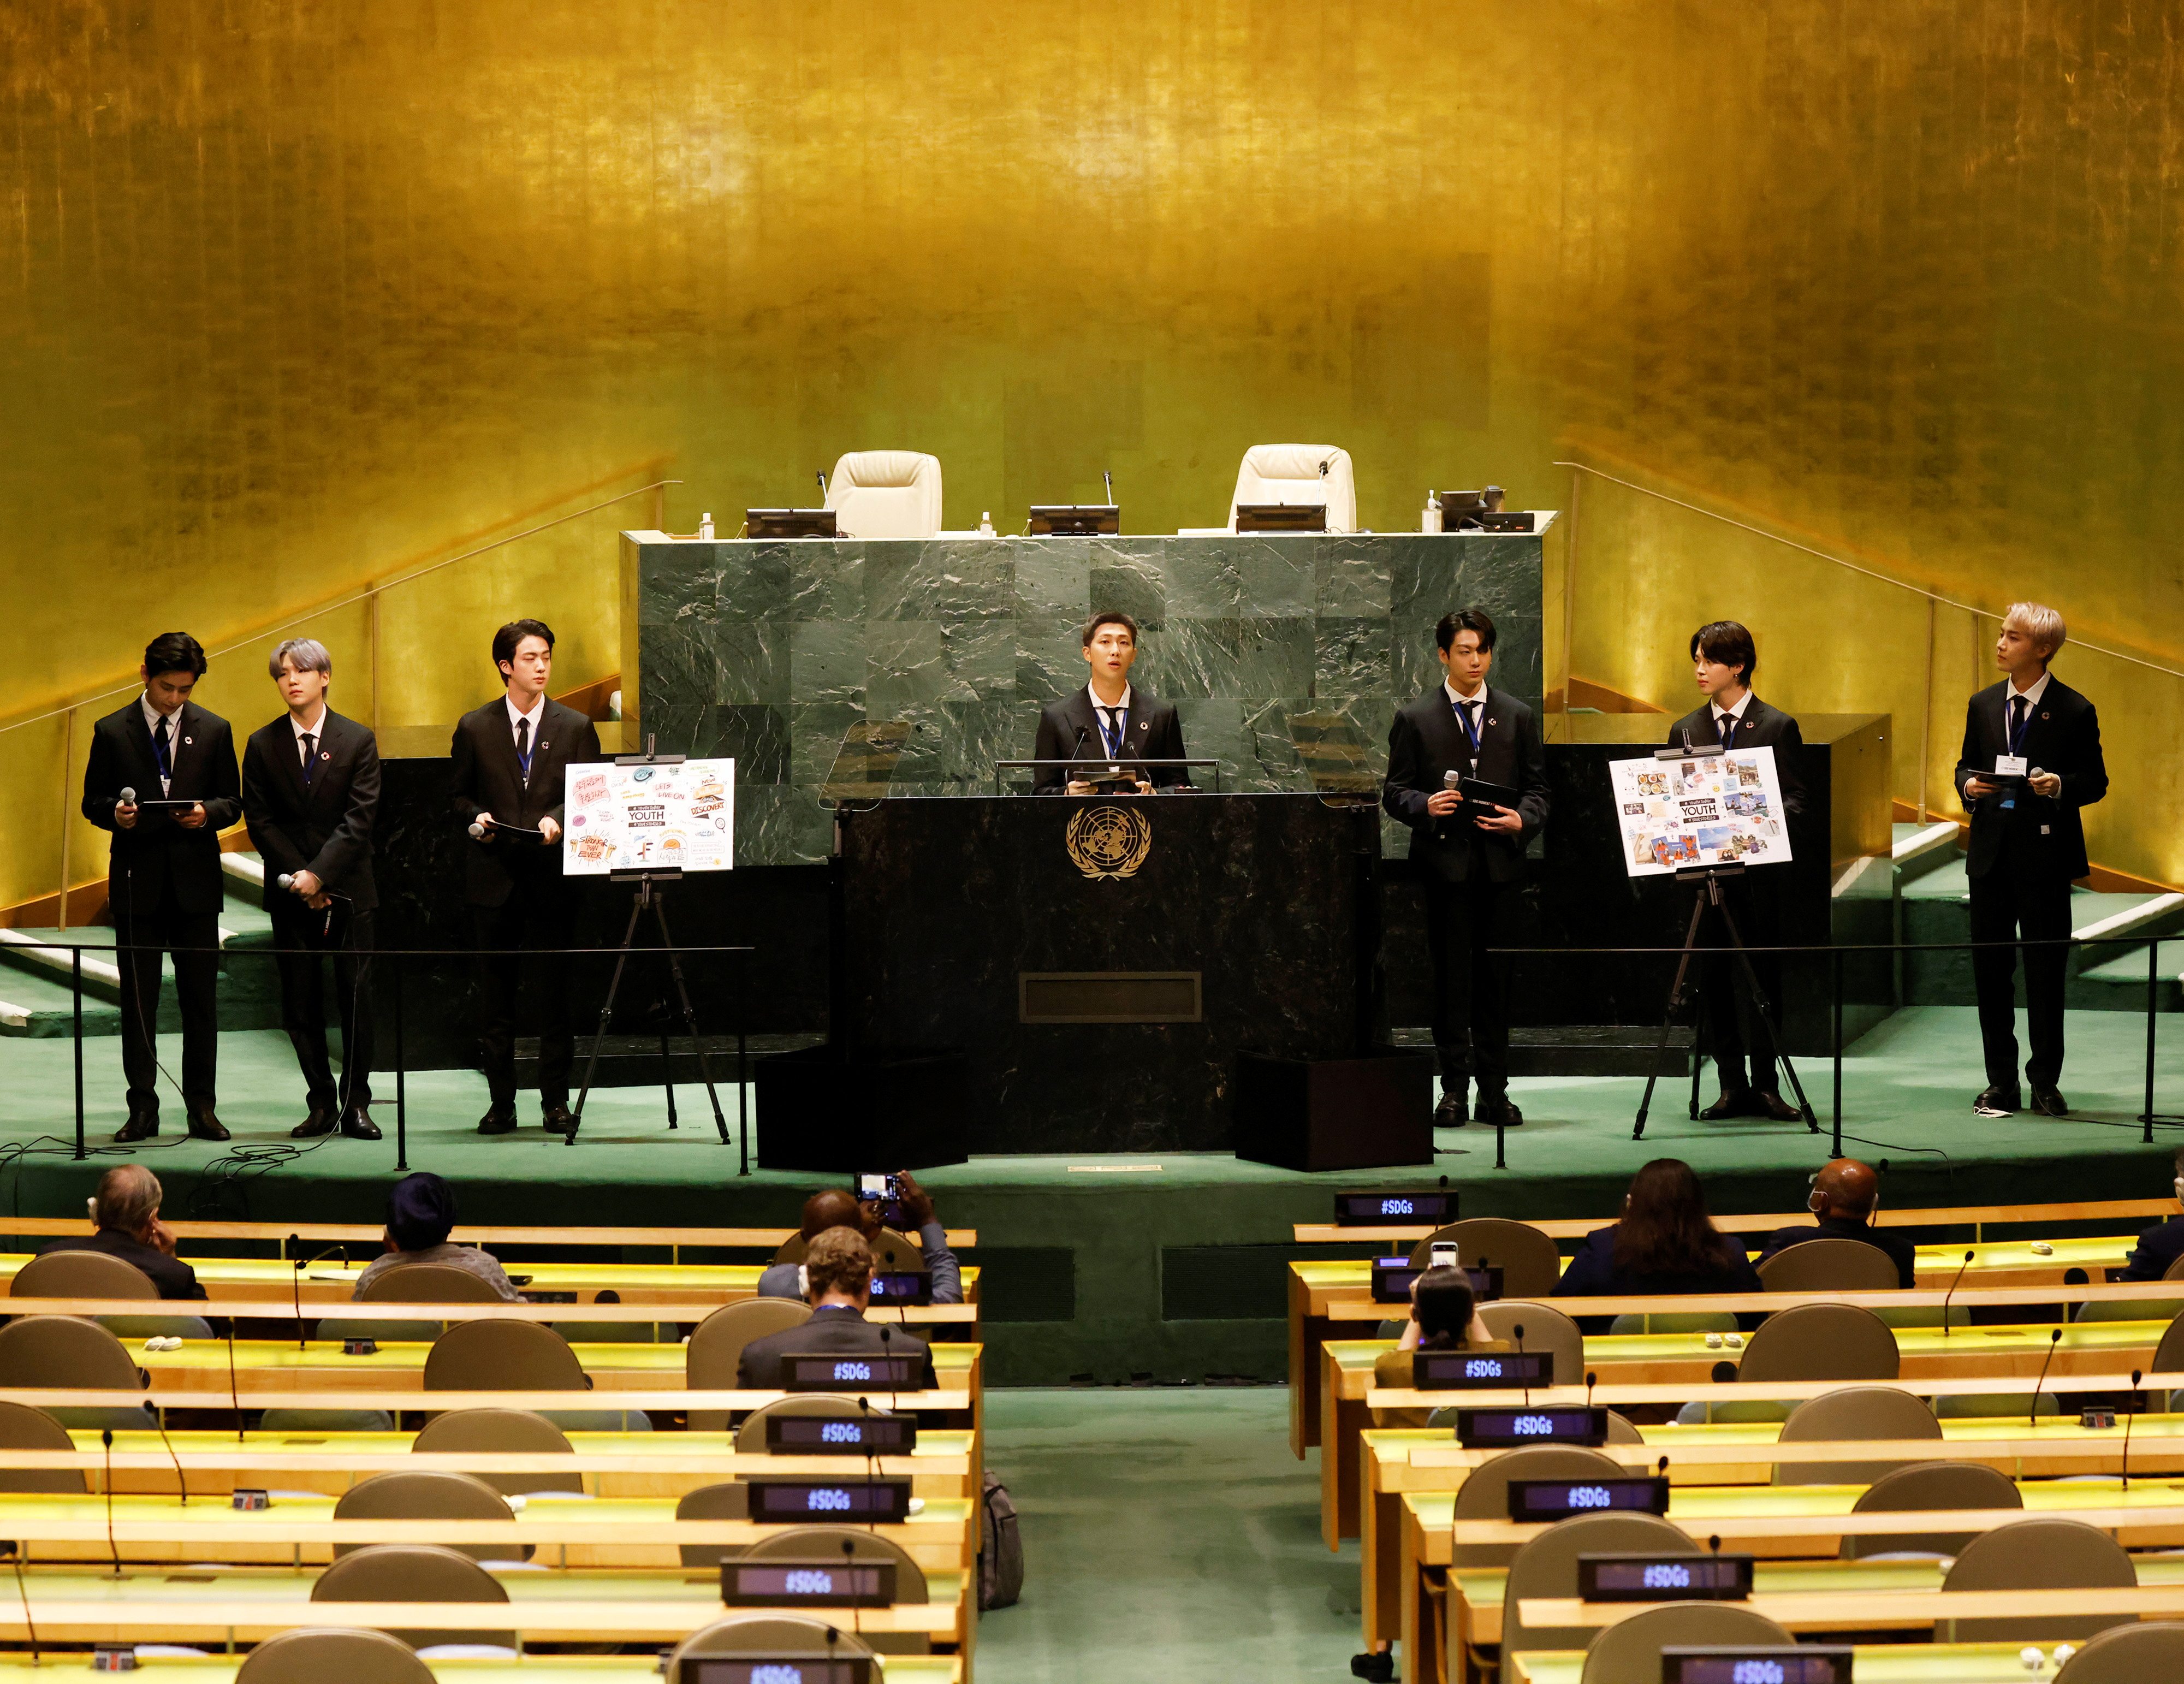 (L to R) Taehyung/V, Suga, Jin, RM, Jungkook, Jimin and J-Hope of South Korean boy band BTS speak at the SDG Moment event as part of the UN General Assembly 76th session General Debate in UN General Assembly Hall at the United Nations Headquarters, in New York, U.S., September 20, 2021. John Angelillo/Pool via REUTERS